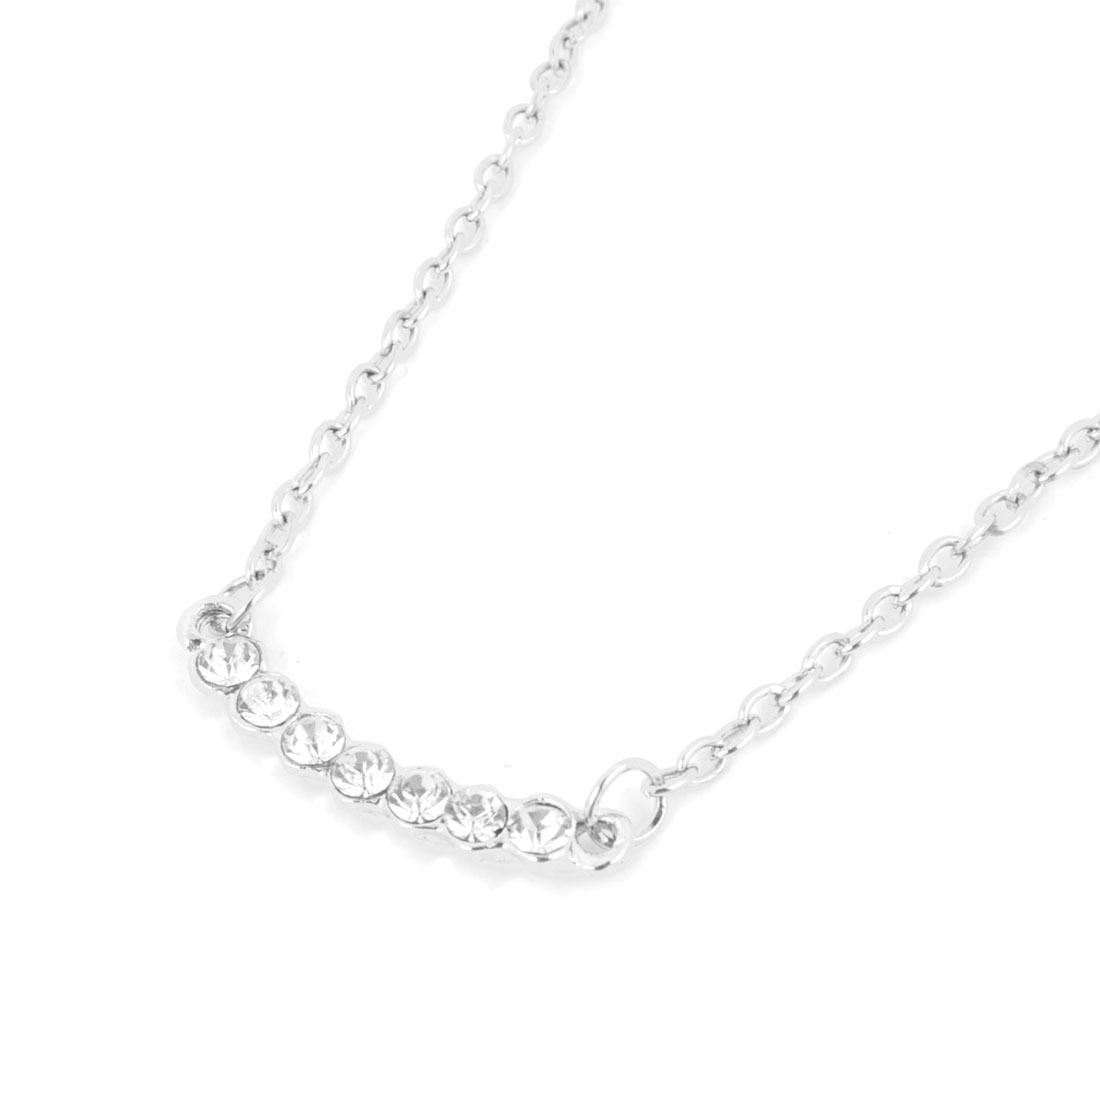 Lady Glittery Rhinestone Inlaid Silver Tone Chain Necklace Neck Decor